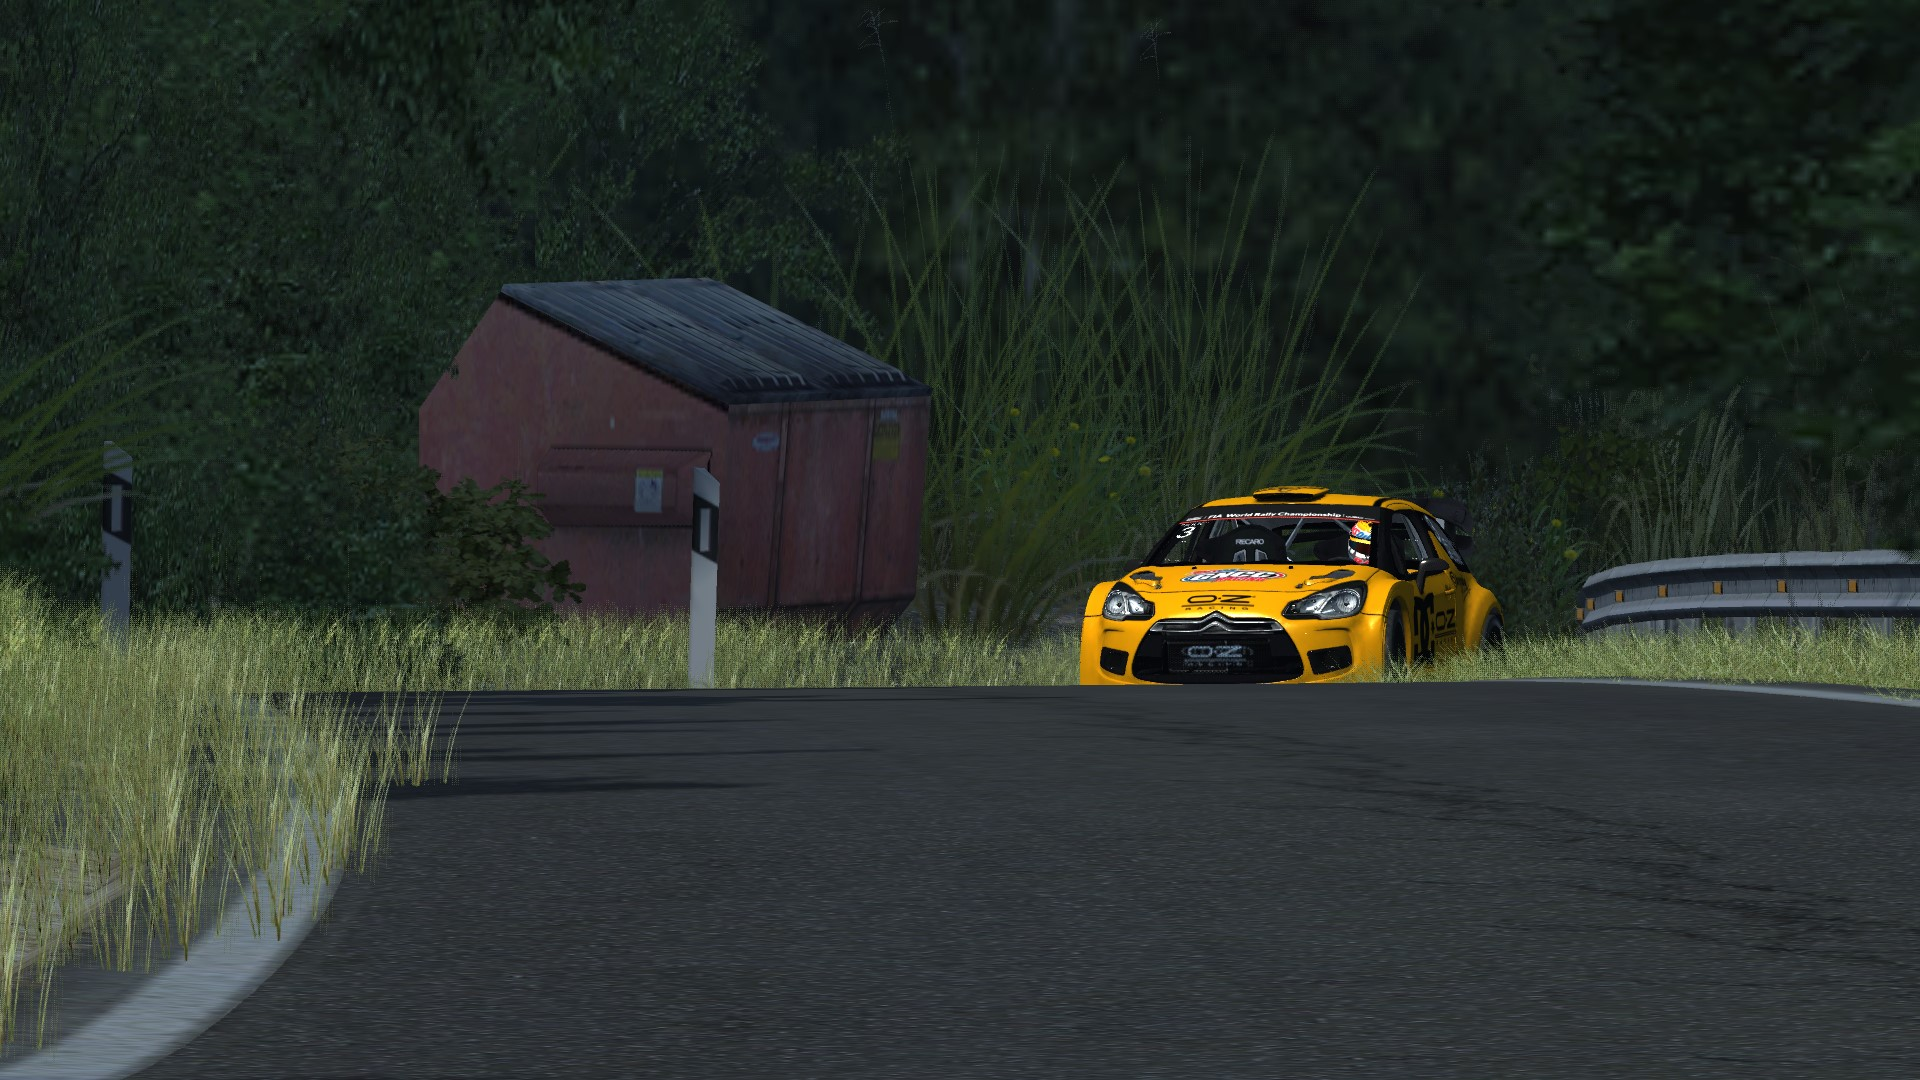 Screenshot_ds3_wrc_2015_hillclimb_moya_20-2-116-21-36-12.jpg